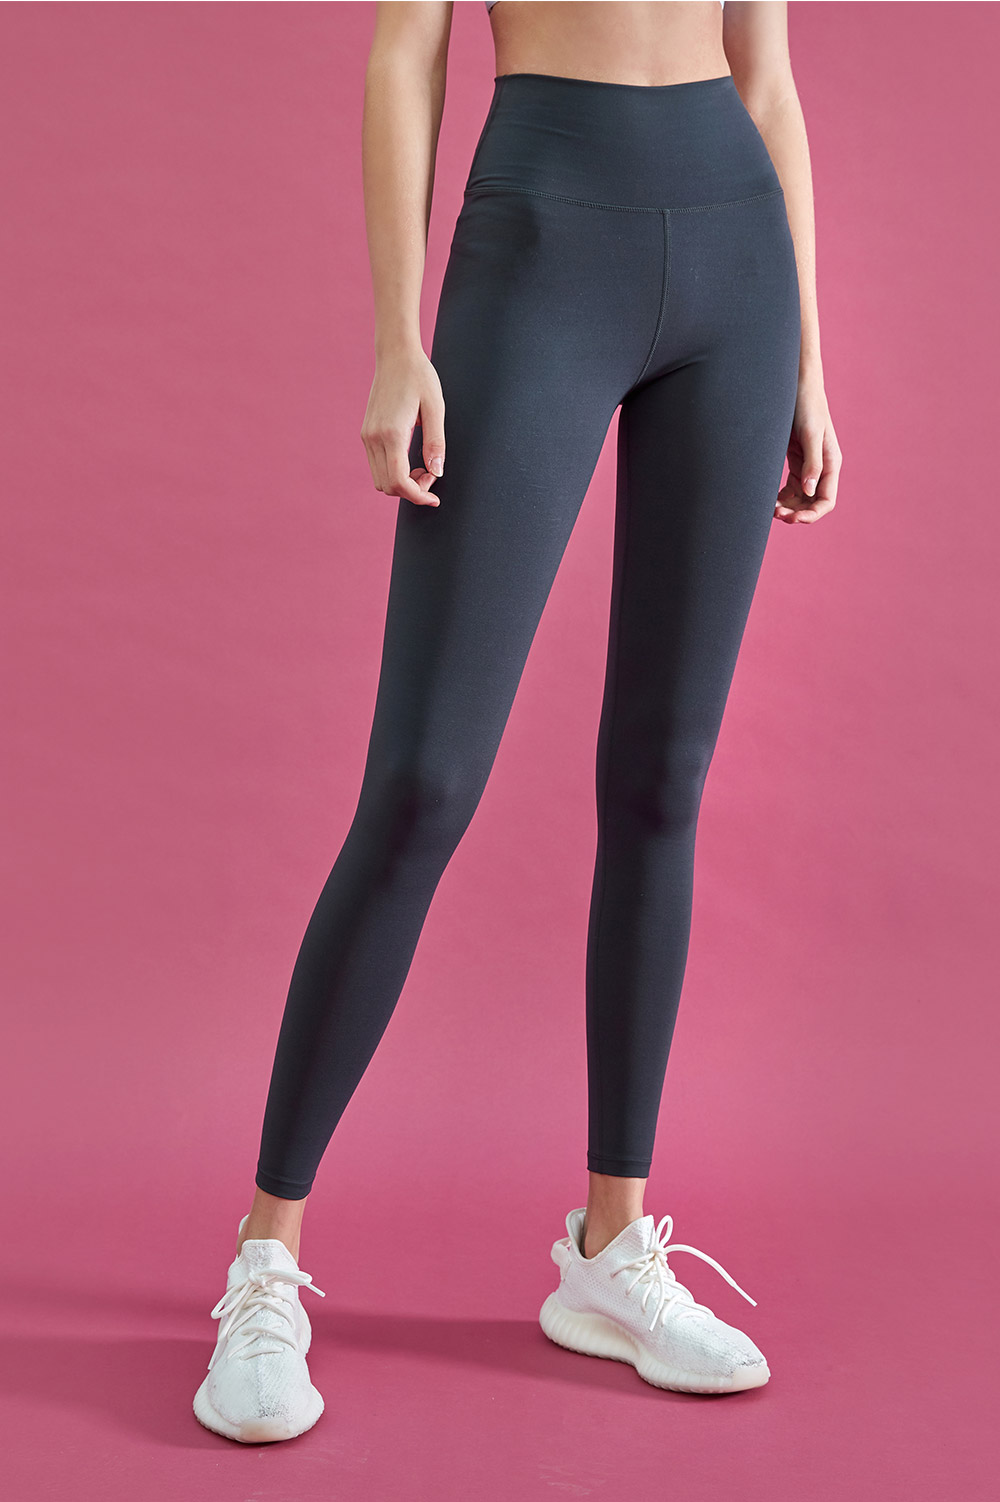 //cdn.nhanh.vn/cdn/store/29770/psCT/20190108/11027736/_5Kg_Perfect_Line_Leggings_Plus_(2019_22_32).jpg